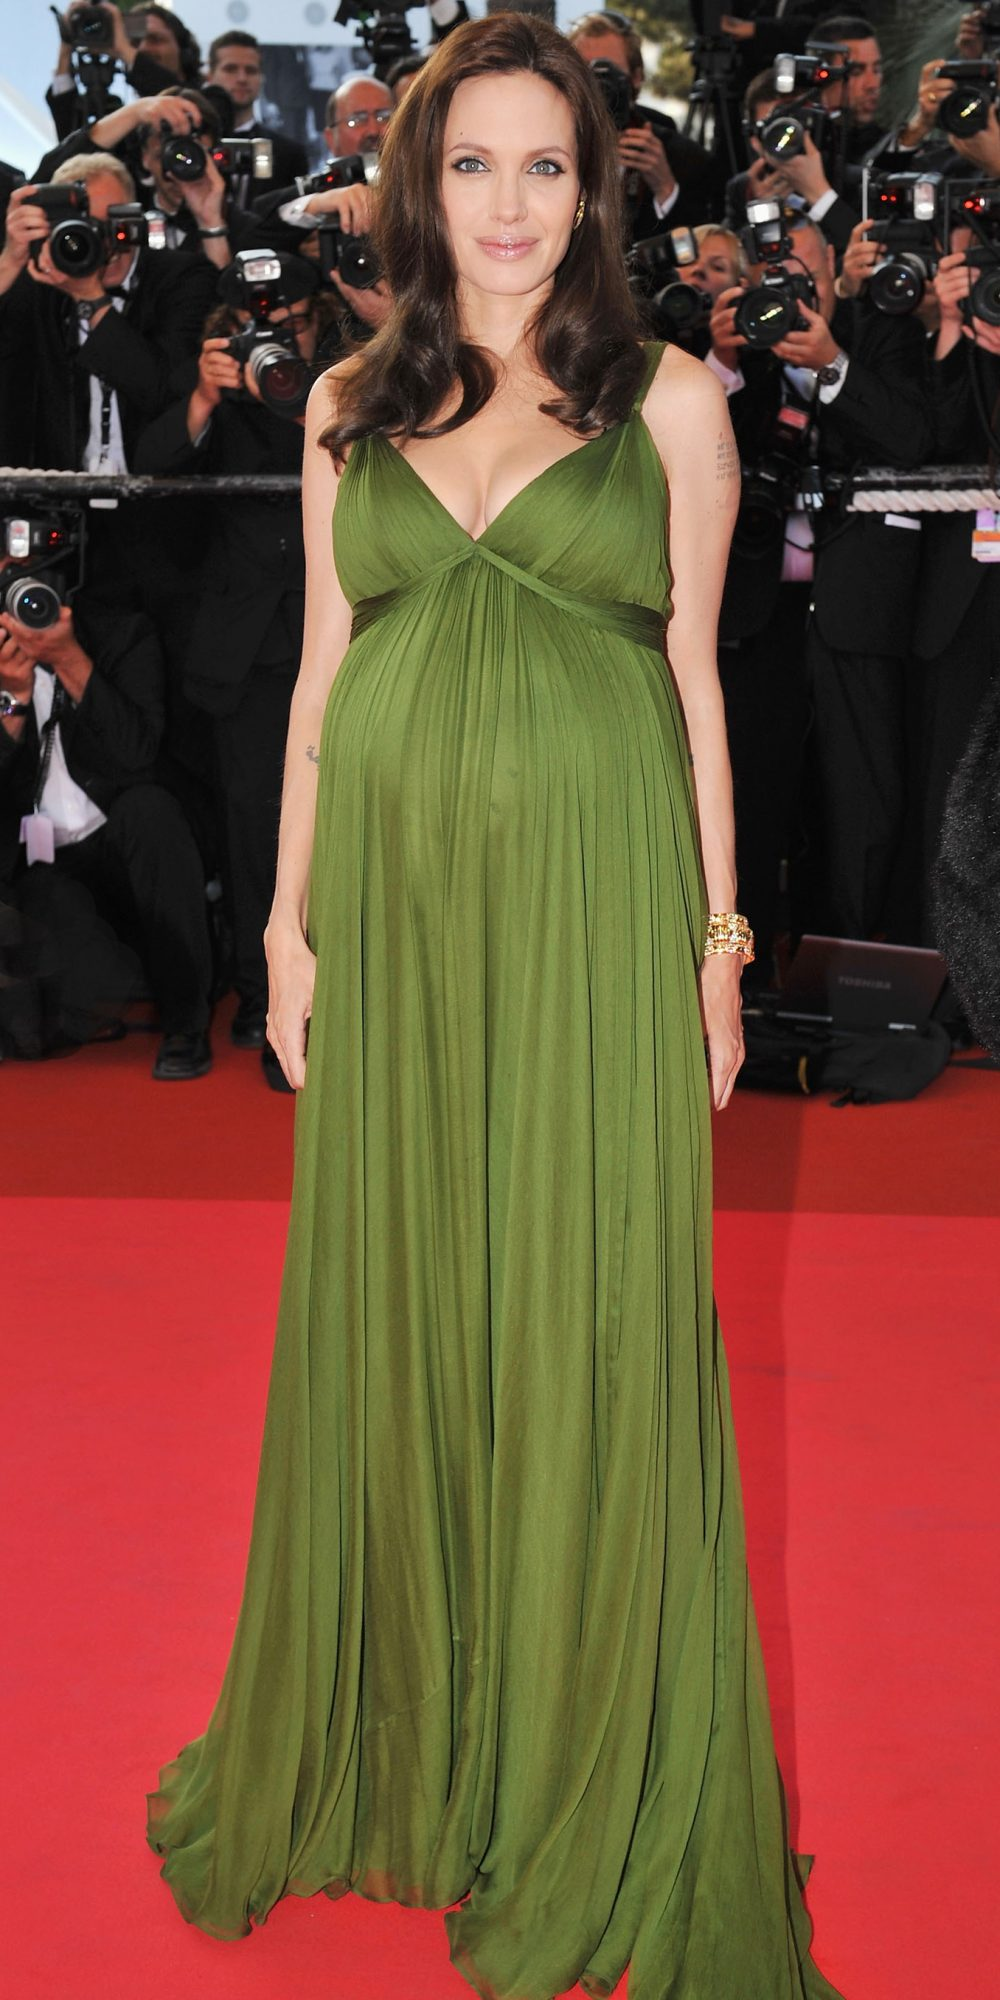 Angelina Jolie in Max Azria Aterlier, 2008 Cannes Film Festival, Cannes Best Dressed, Fashion